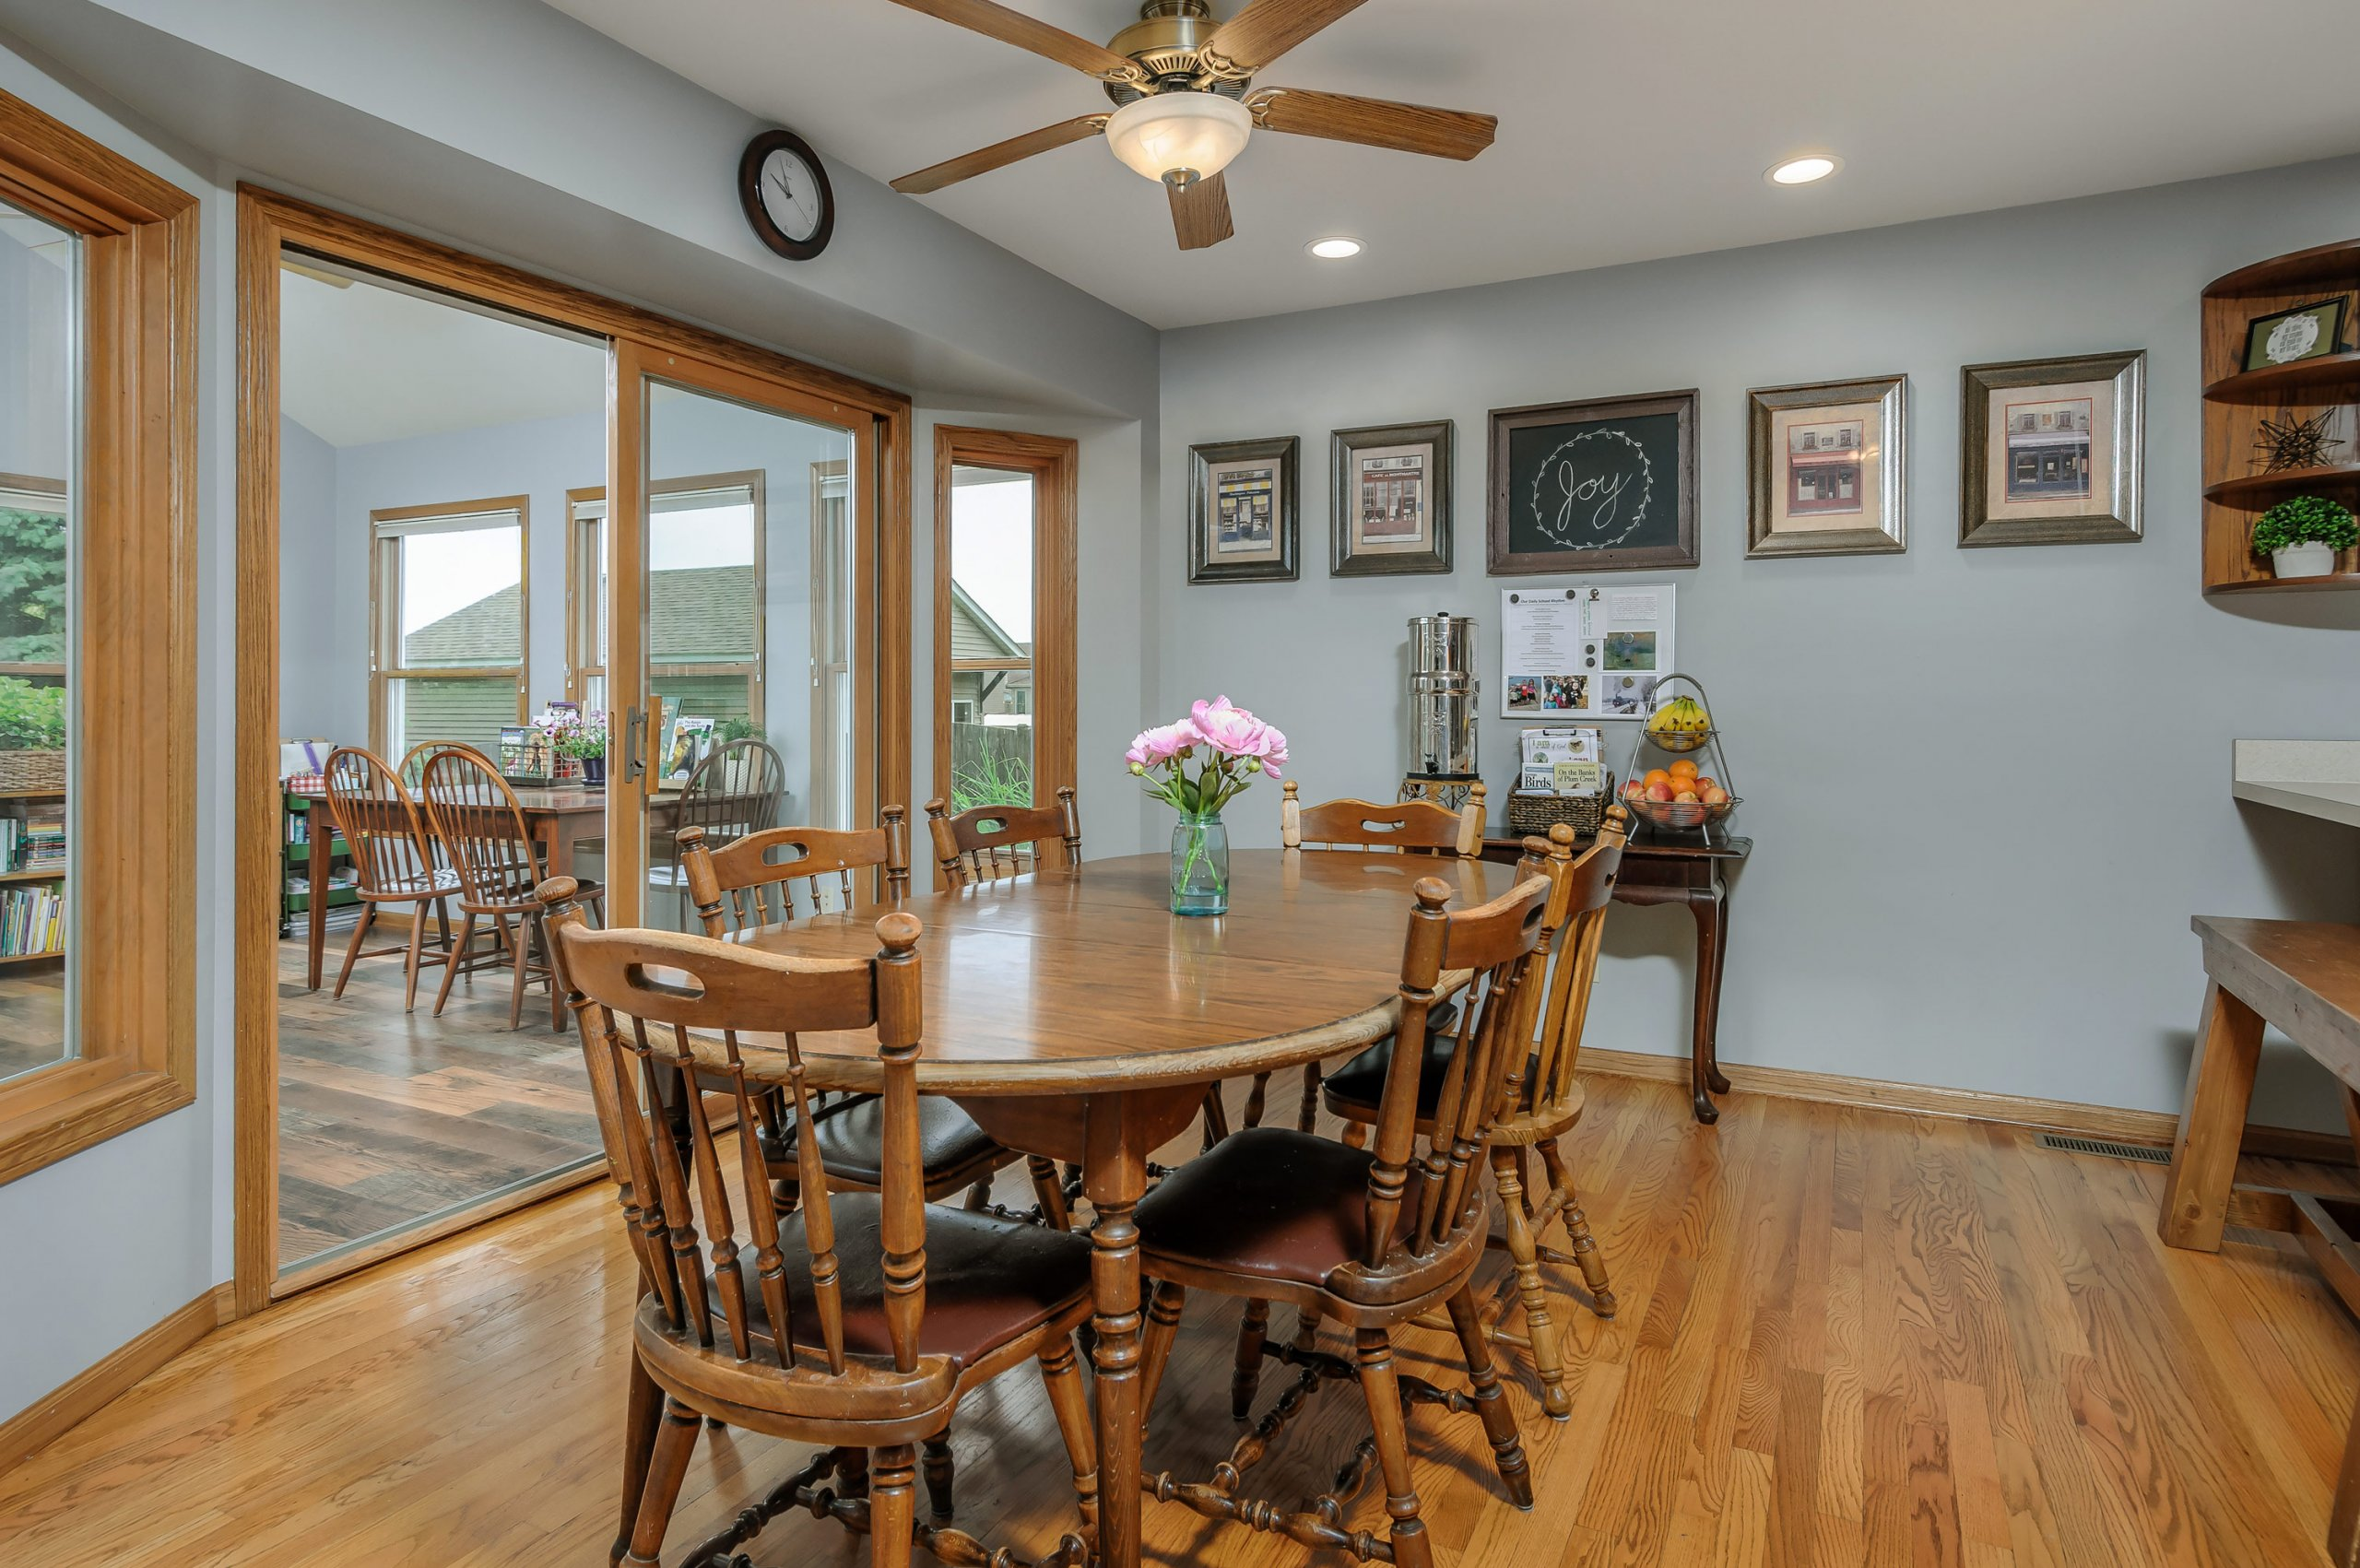 Modern, gray dinette with attached 4 season room view.